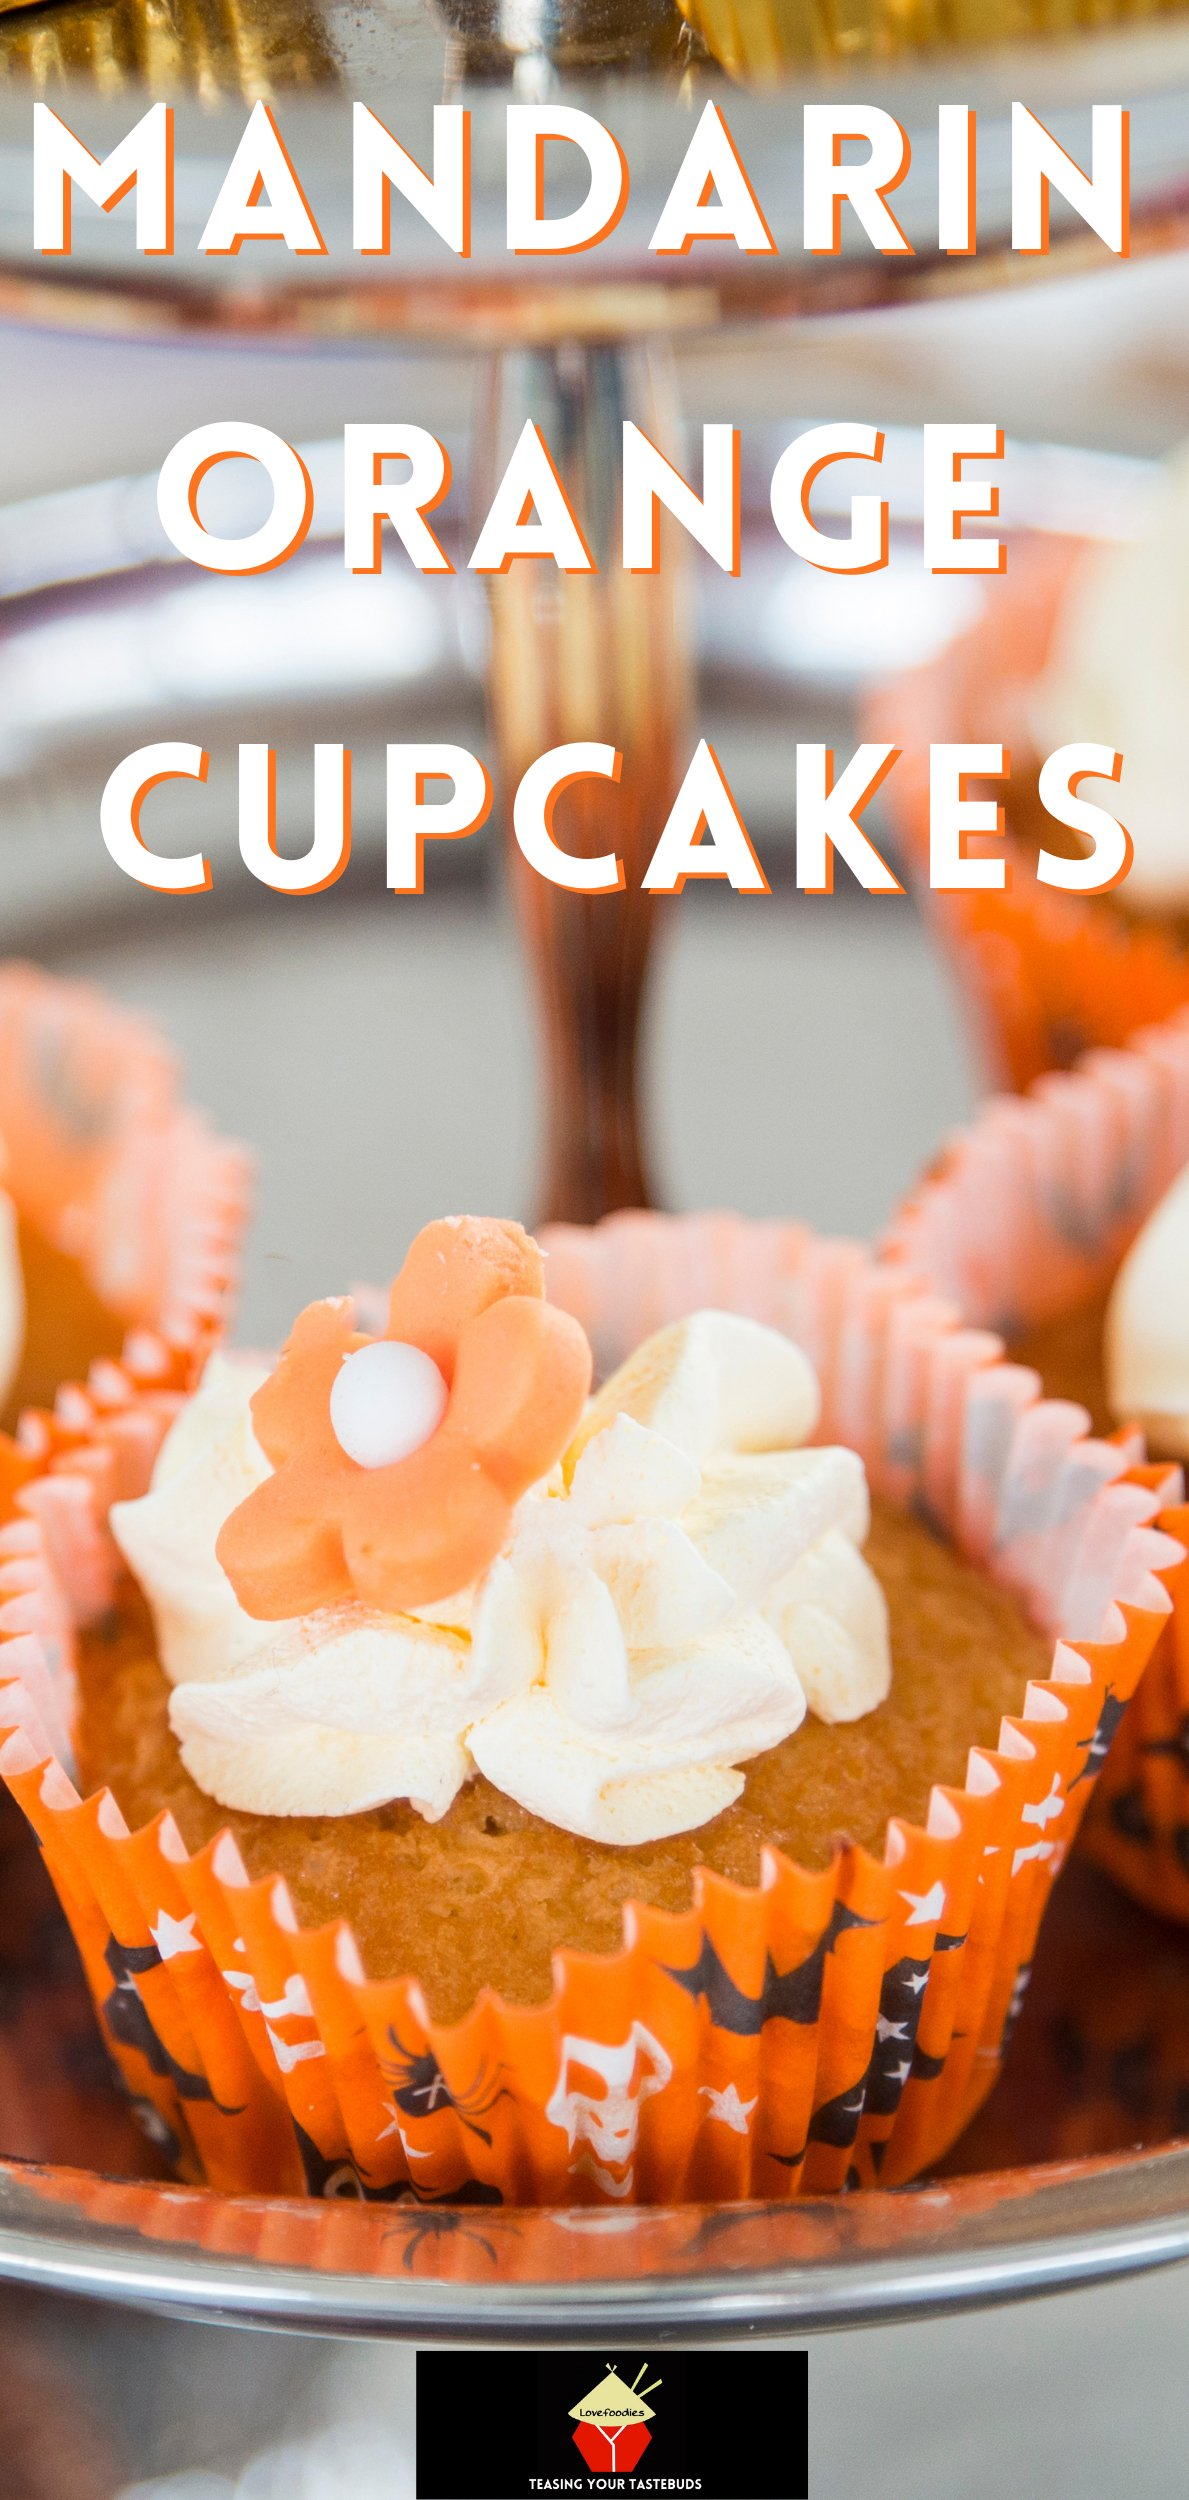 Mandarin Orange Cupcakes with Whipped Cream Topping, easy made from scratch recipe with a creamy frosting